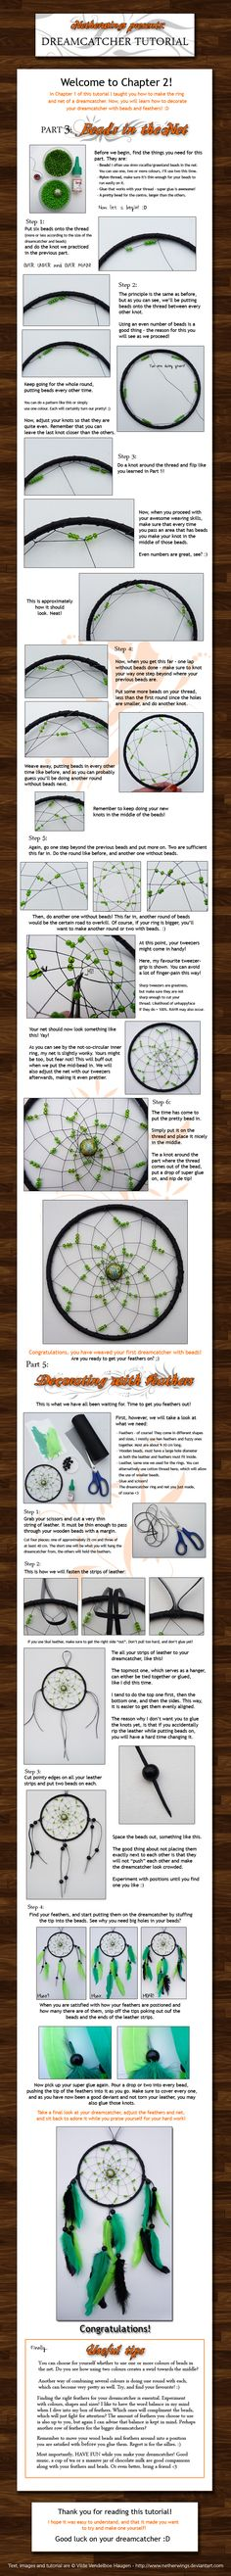 Dreamcatcher tutorial: Ch. 2 by netherwings on deviantART